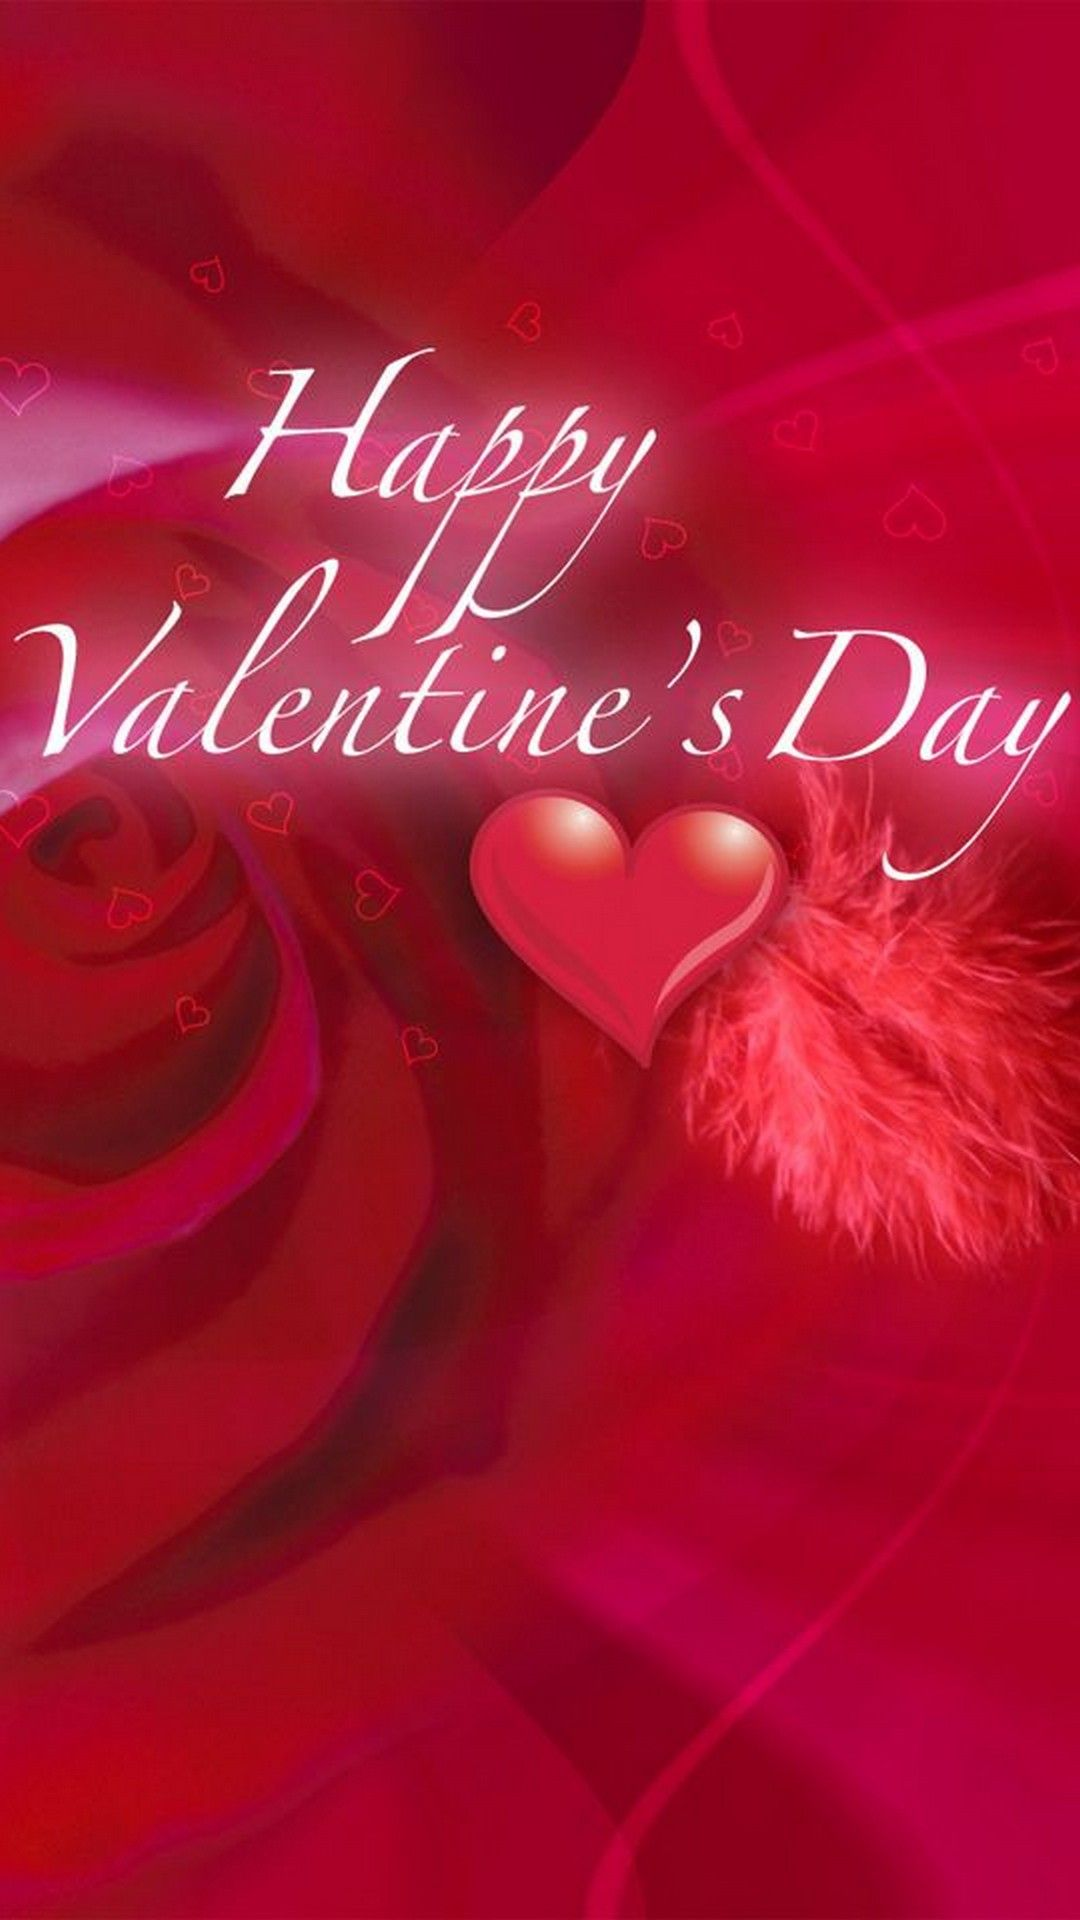 Best Happy Valentine Day Iphone Wallpaper 2018 Iphone Wallpapers